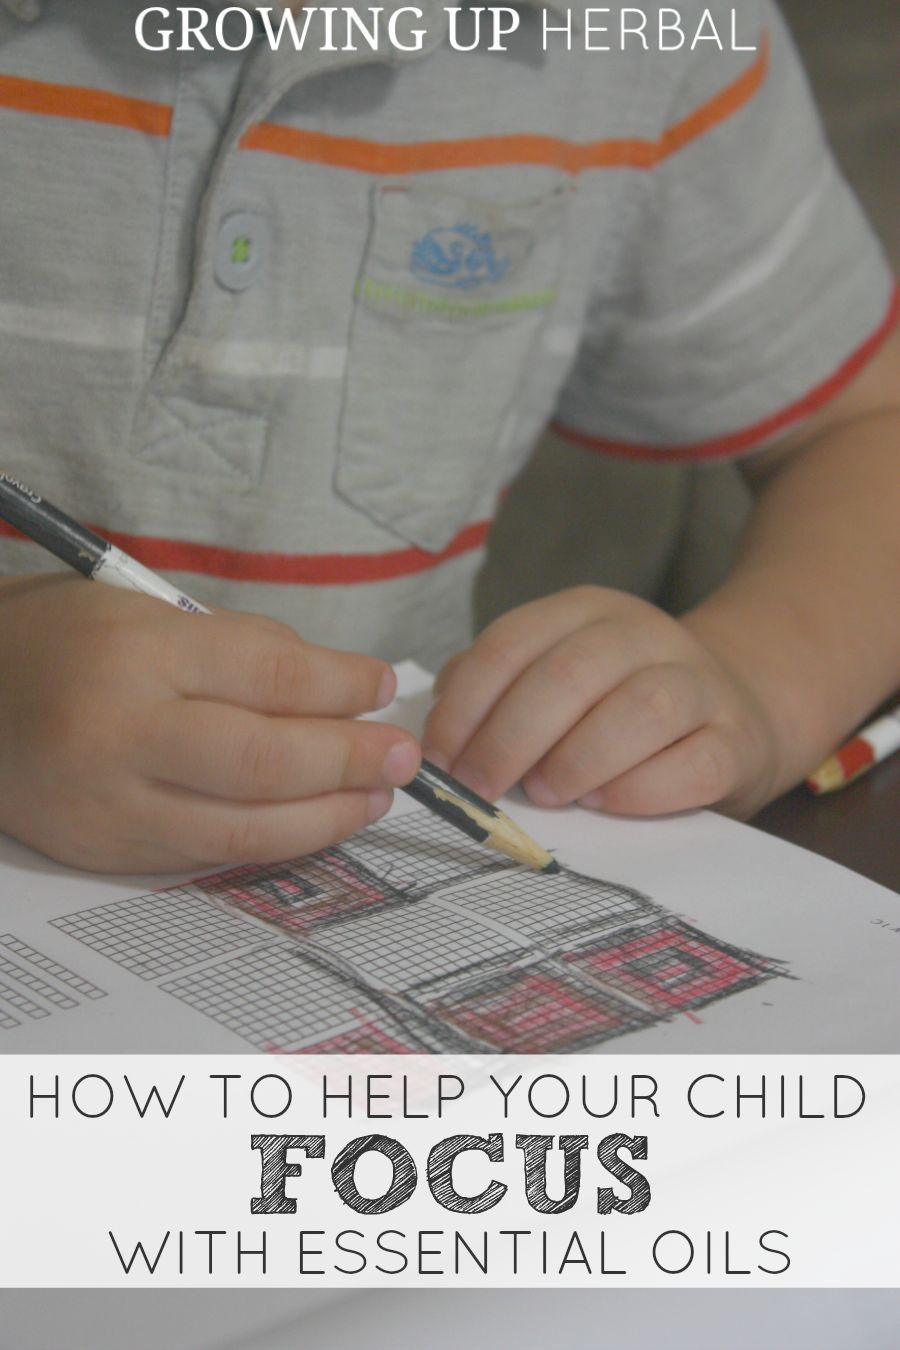 Worksheet Help Your Child Focus how to help your child focus using essential oils growing up herbal learn this year at school with e